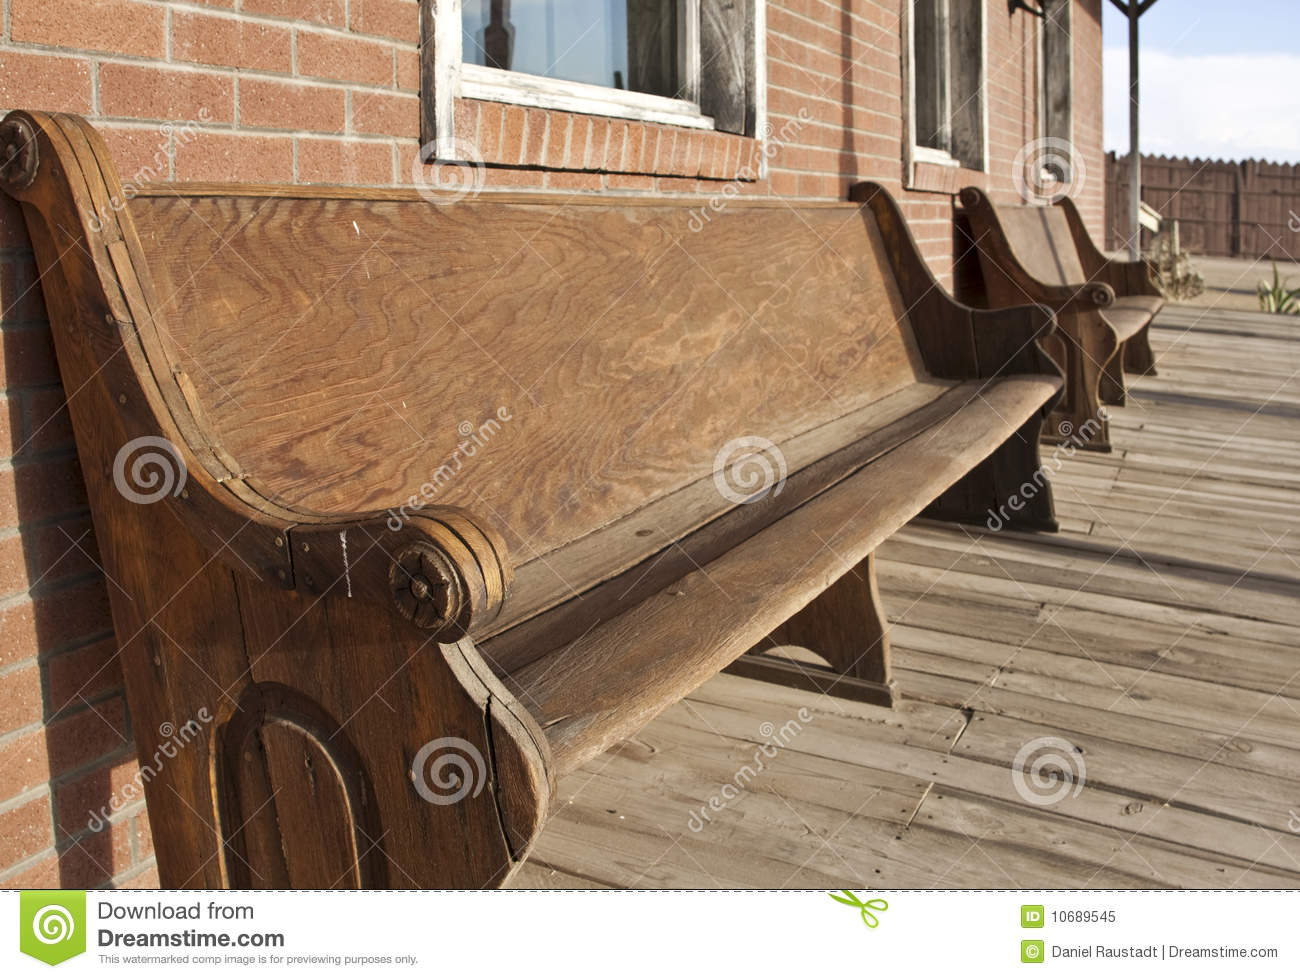 Old Western church pews outside bank